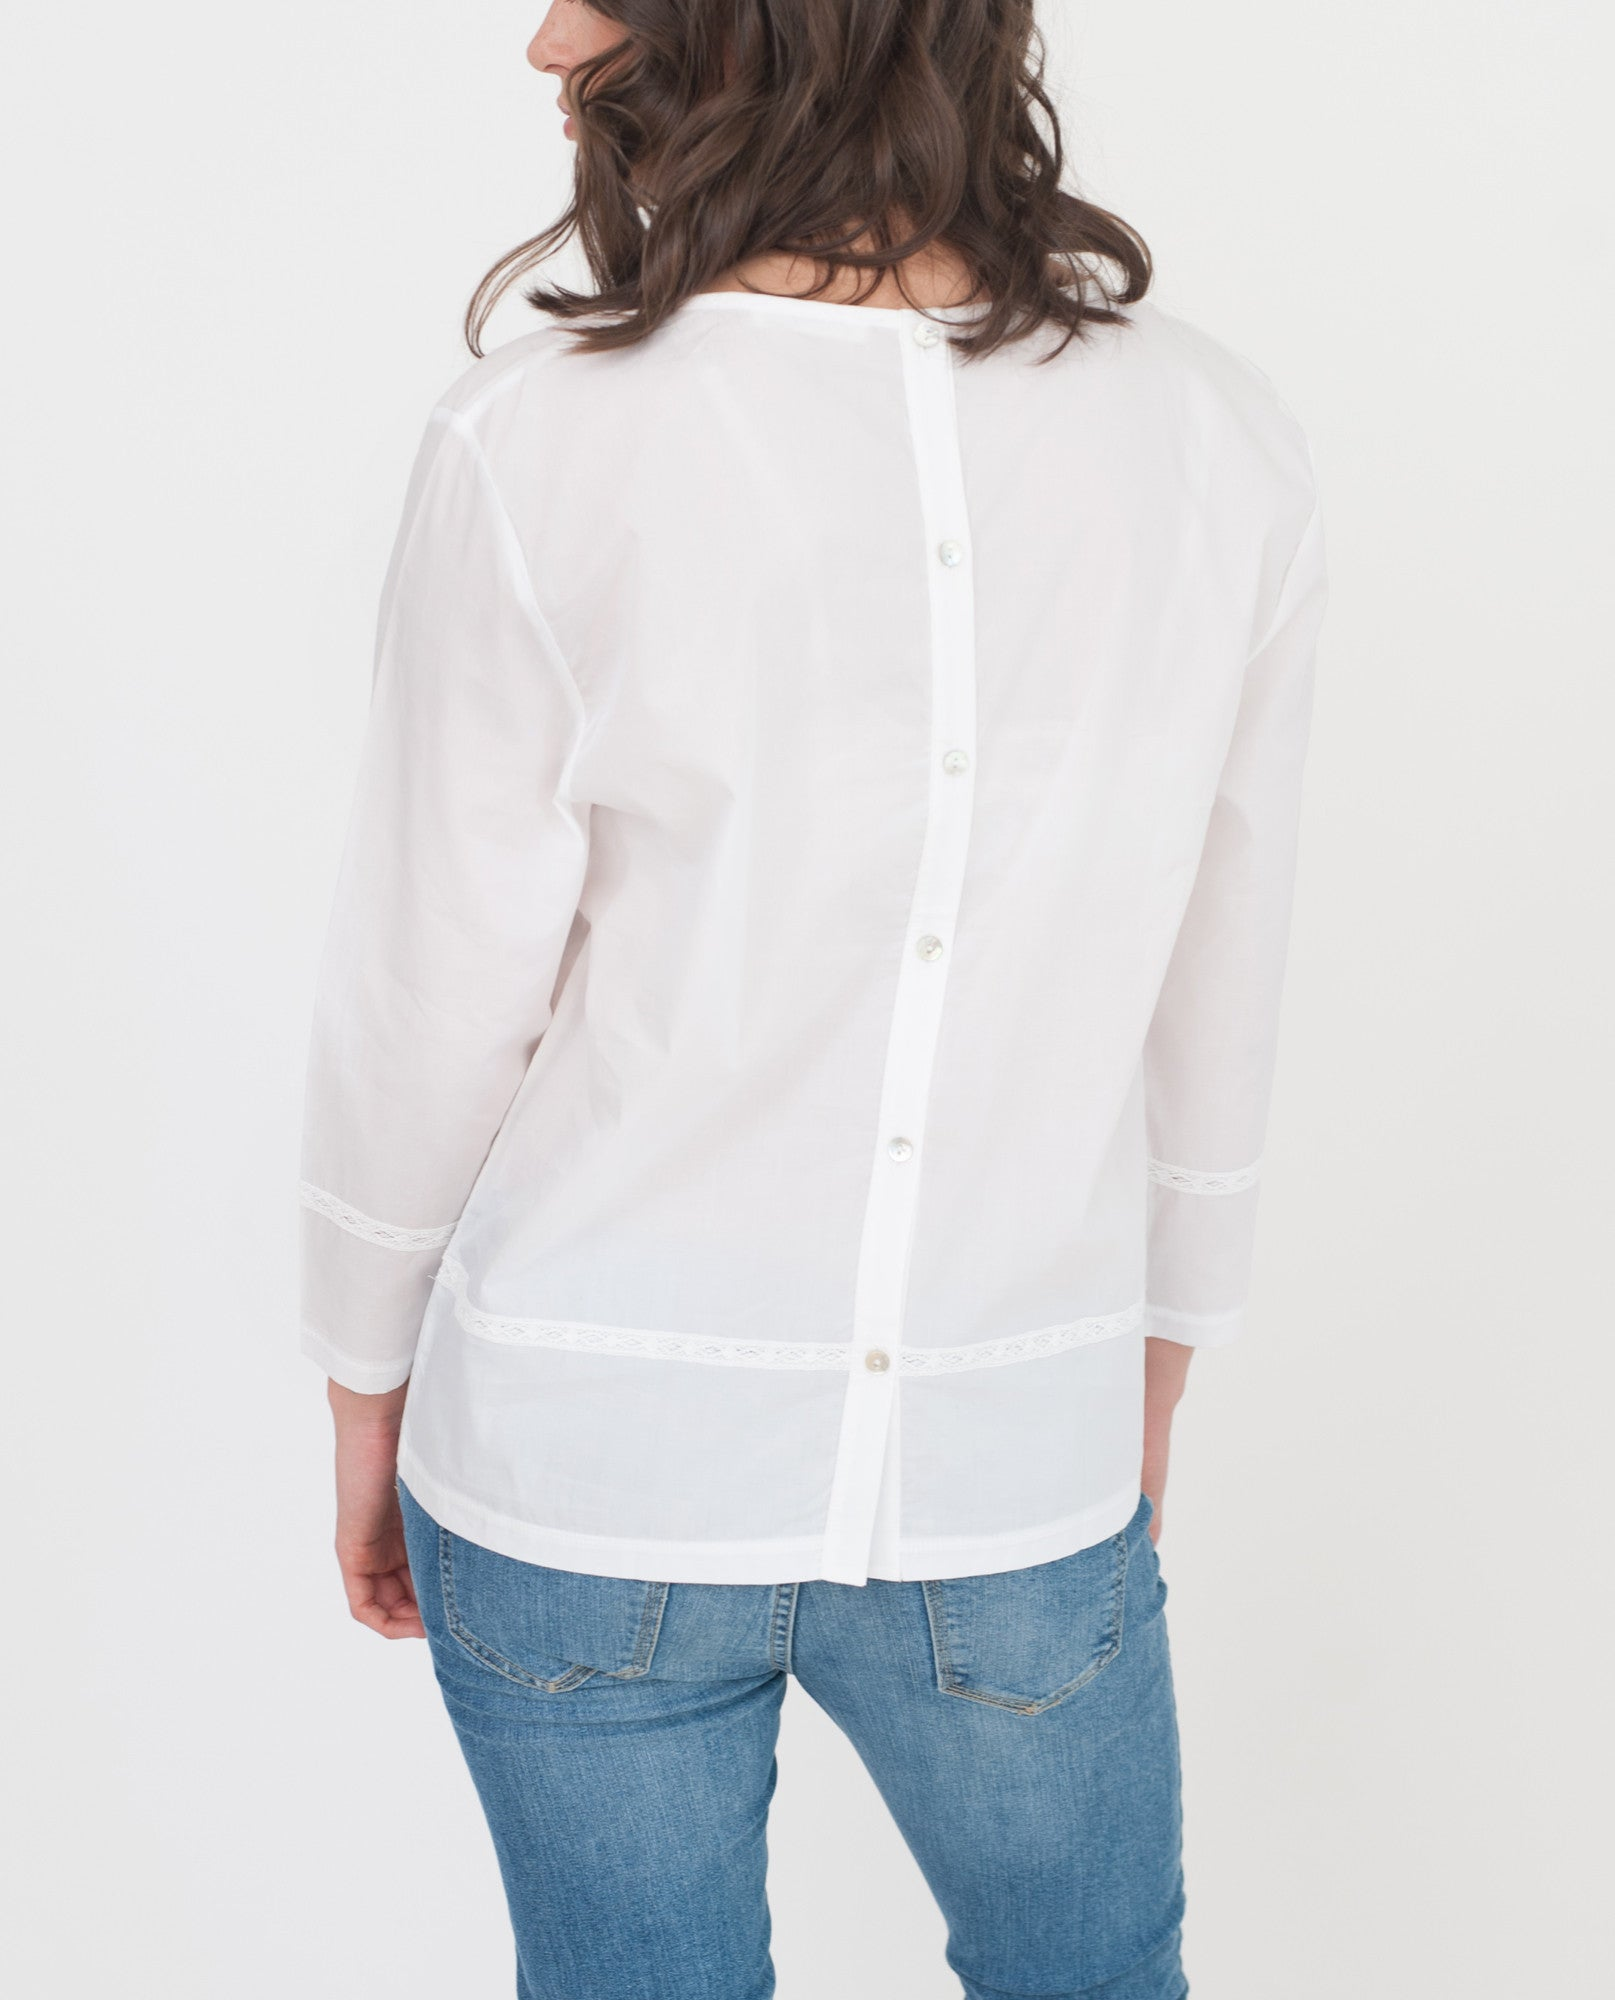 TAYLOR Organic Cotton Blouse In White